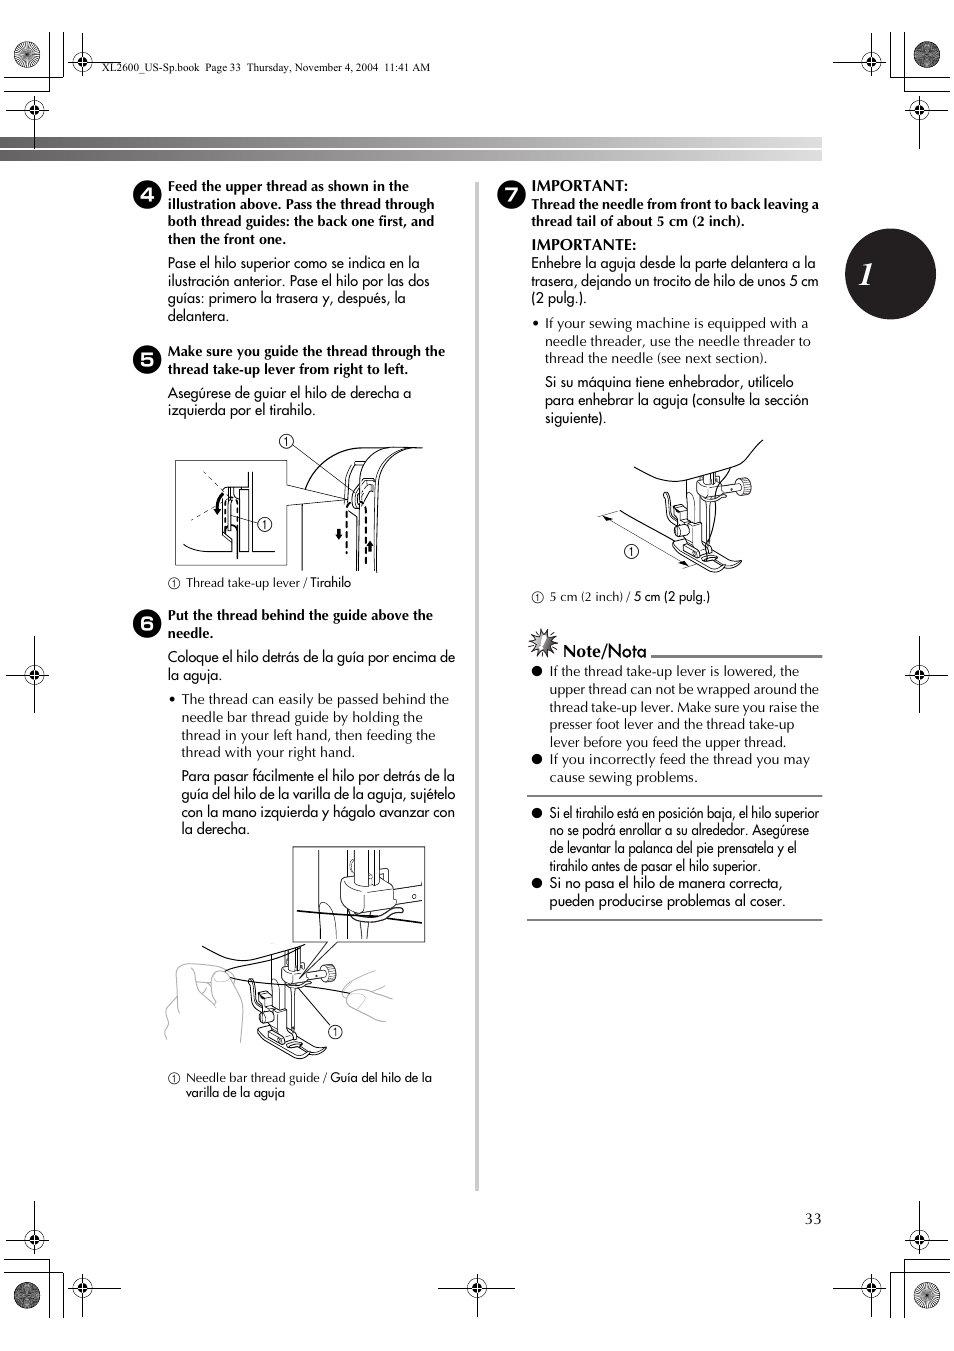 brother xl 2600i user manual page 34 82 original mode also rh manualsdir com brother xl2600i manual for sewing machine brother xl2600i manual how to oil it